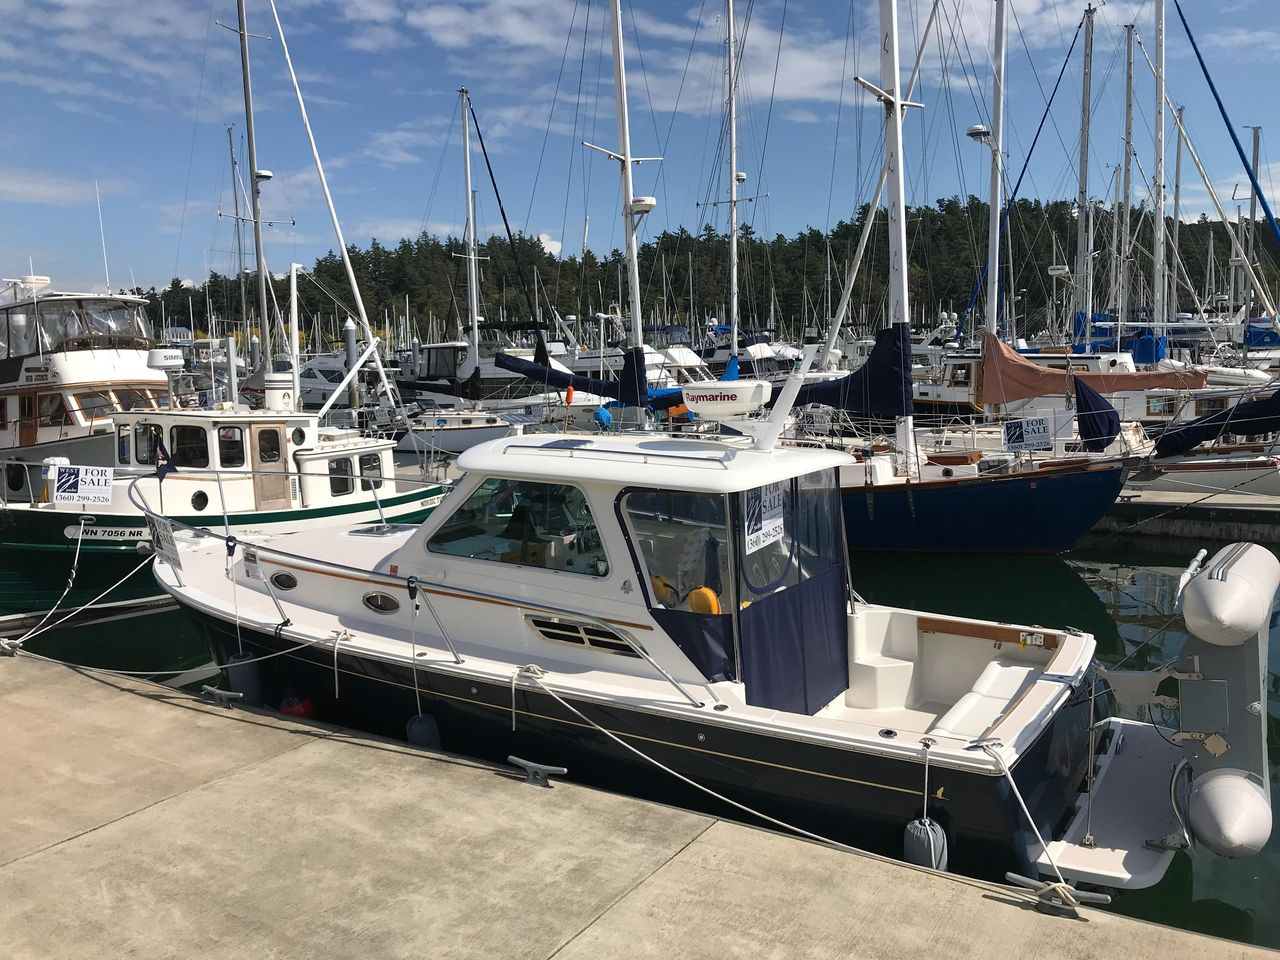 2006 Used Back Cove 29 Commercial Boat For Sale - $145,000